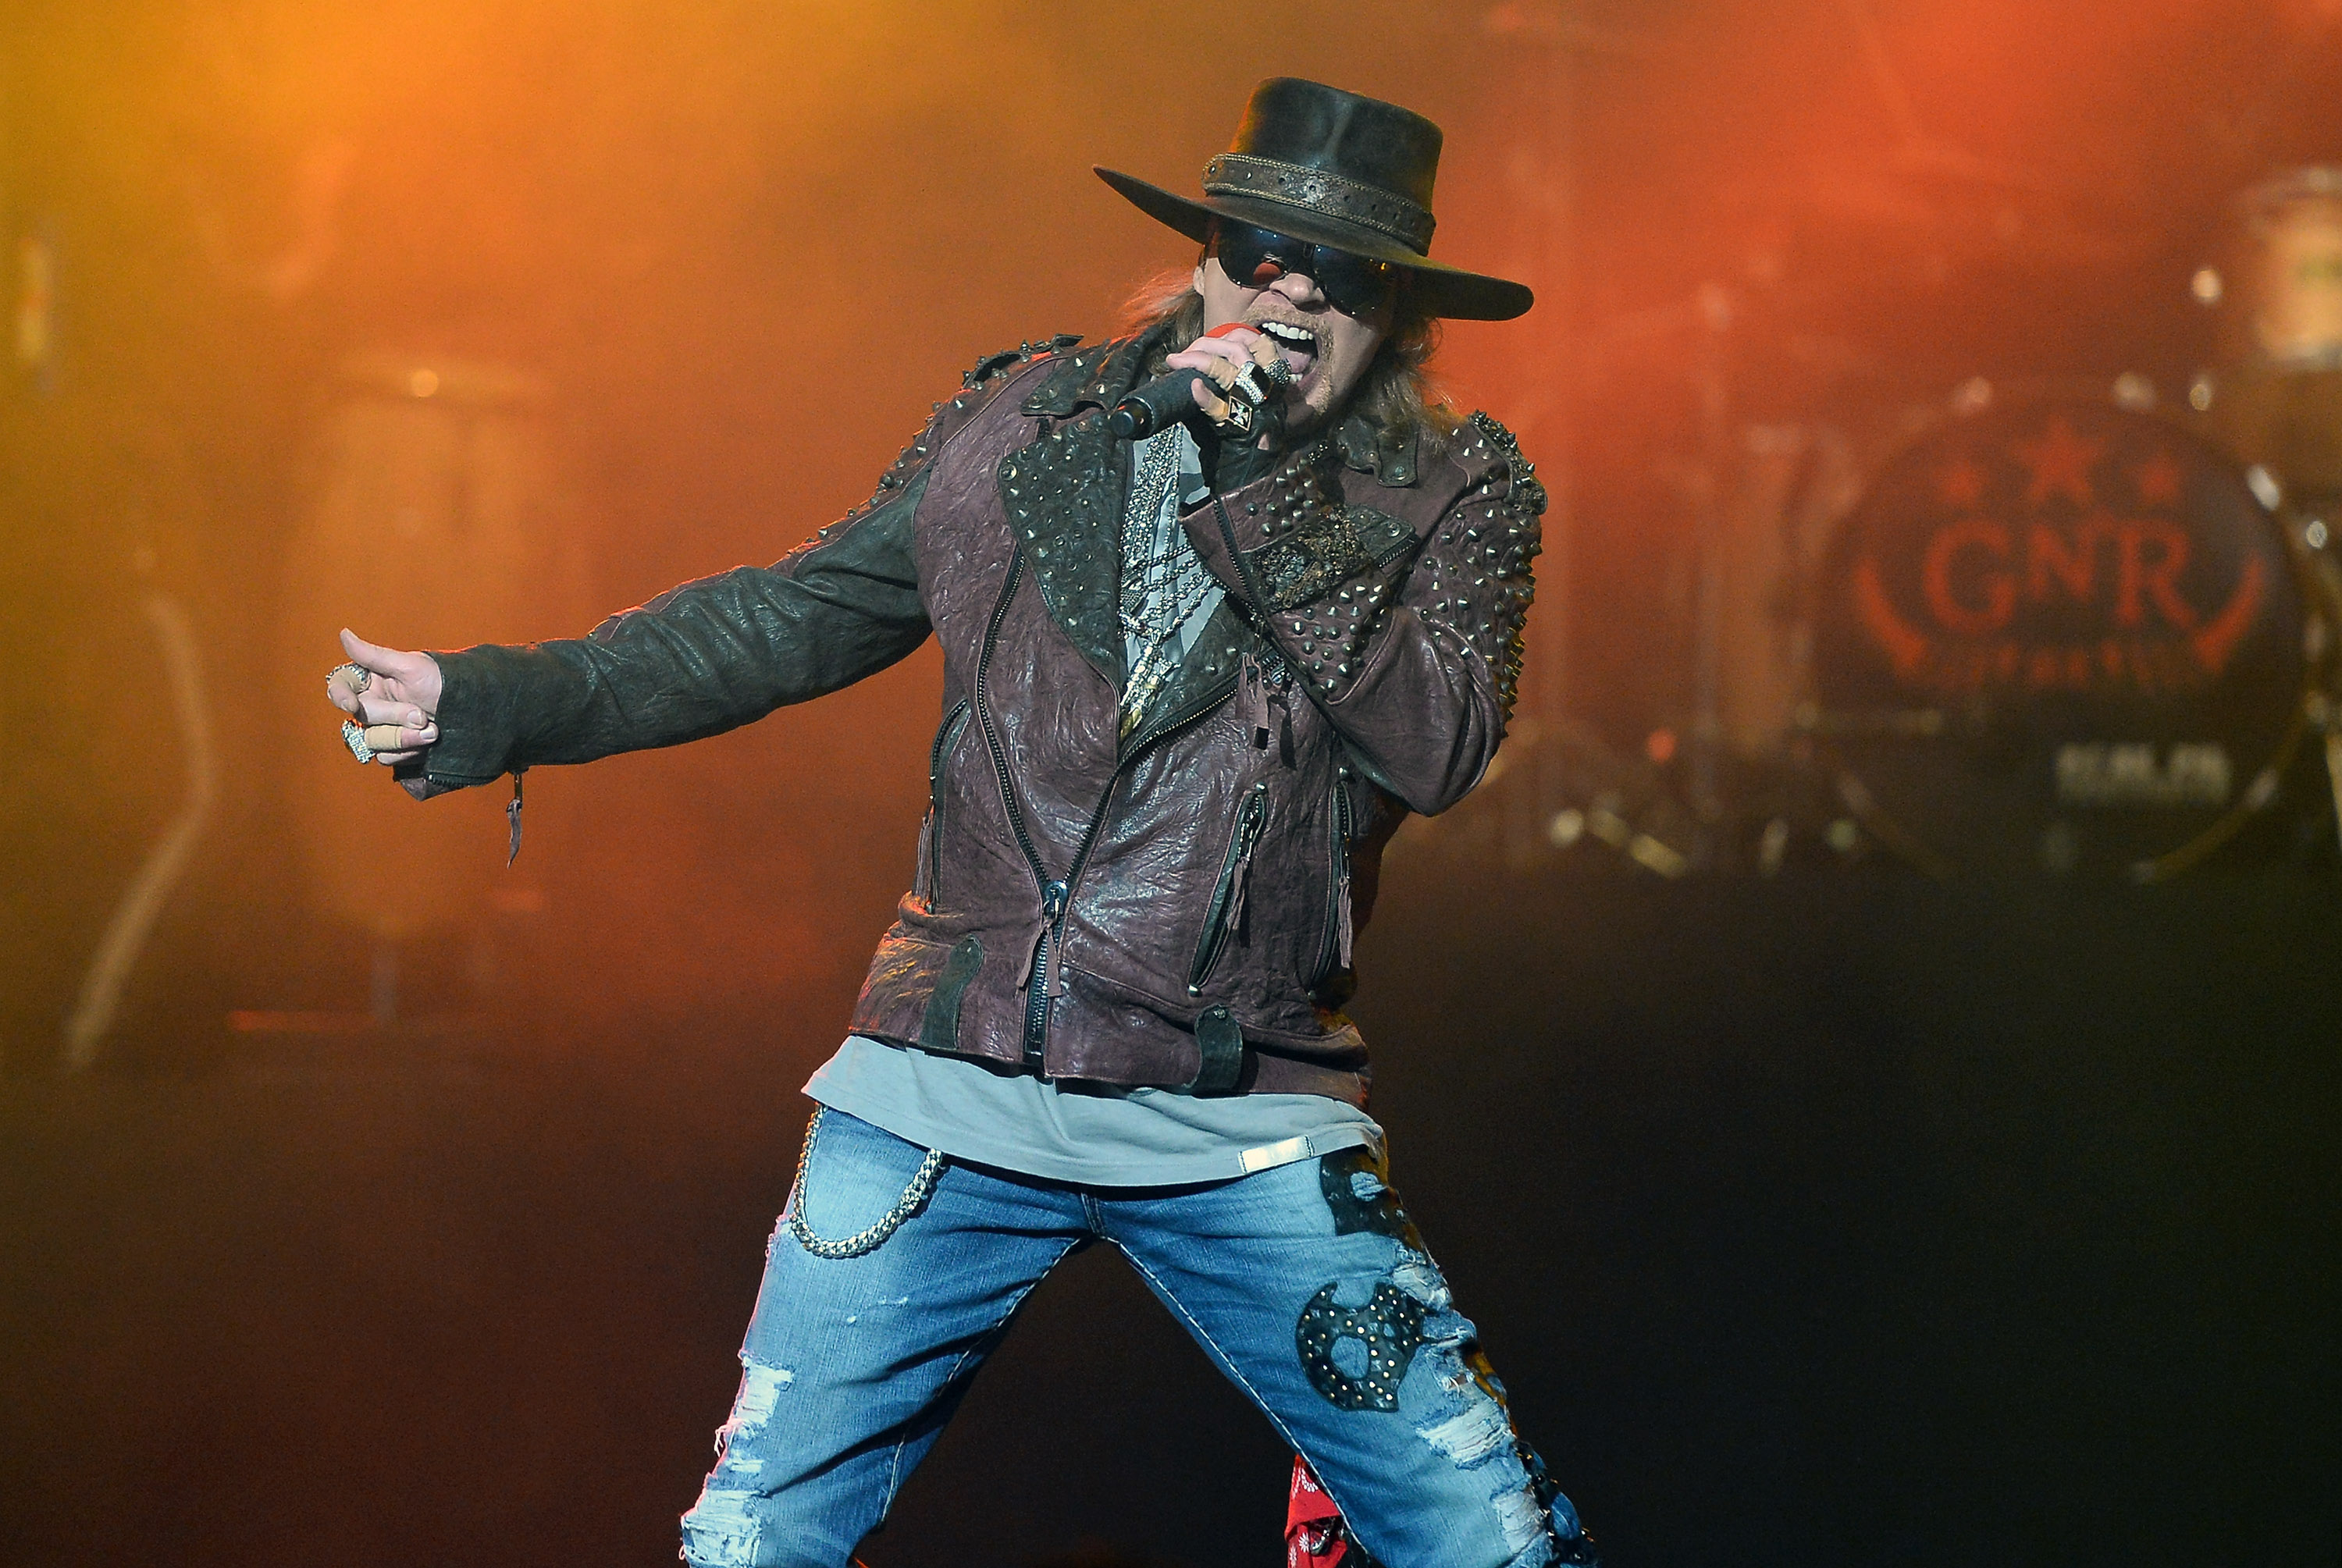 Singer Axl Rose of Guns N' Roses performs at The Joint inside the Hard Rock Hotel & Casino on May 21, 2014 in Las Vegas, Nevada.